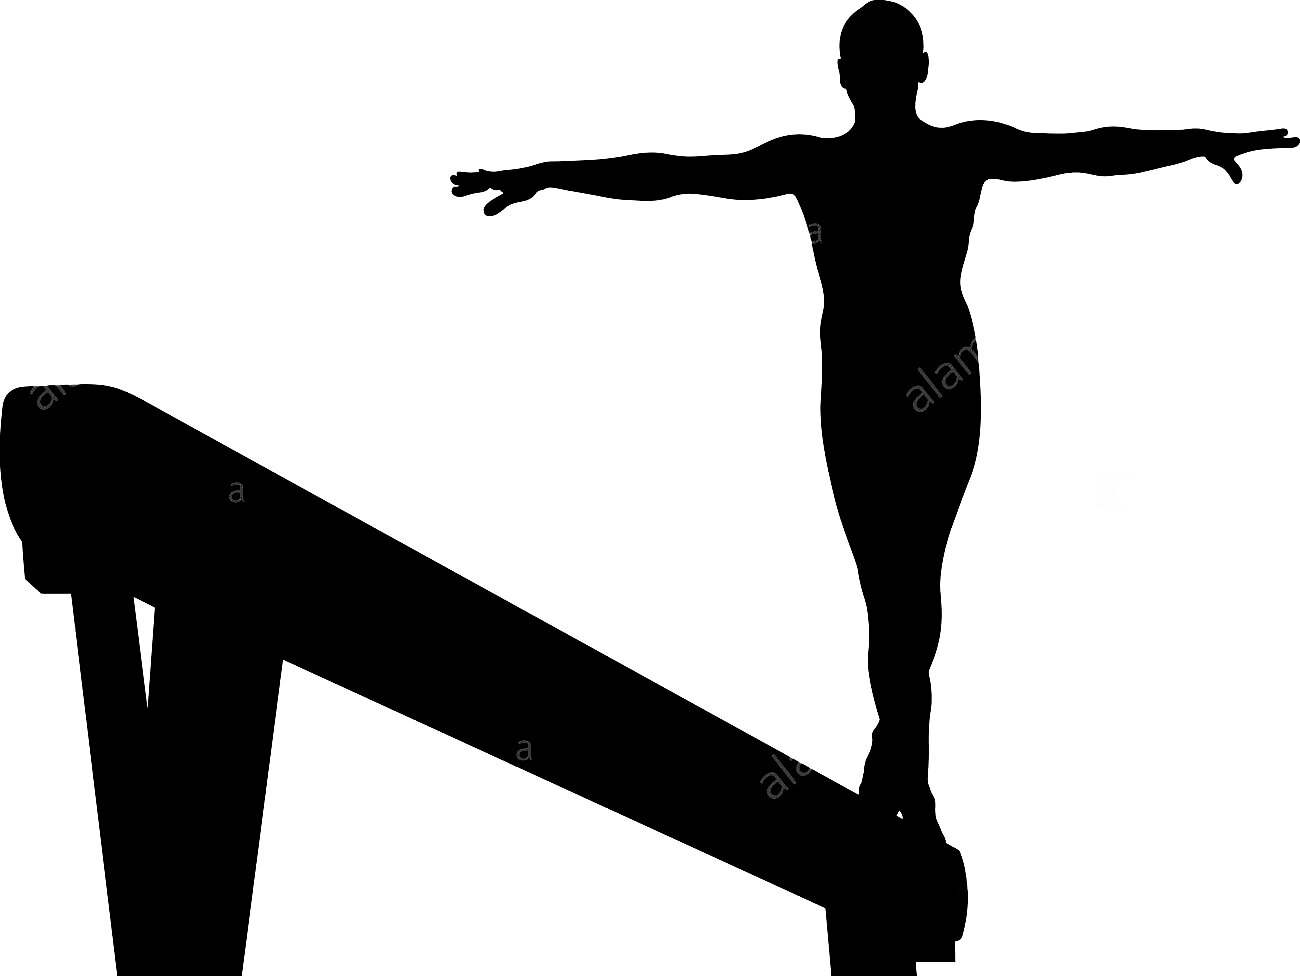 4S balance-beam-girl-gymnast-in-artistic-gymnastics-vector-illustration-KJ6KW0 copy.jpg